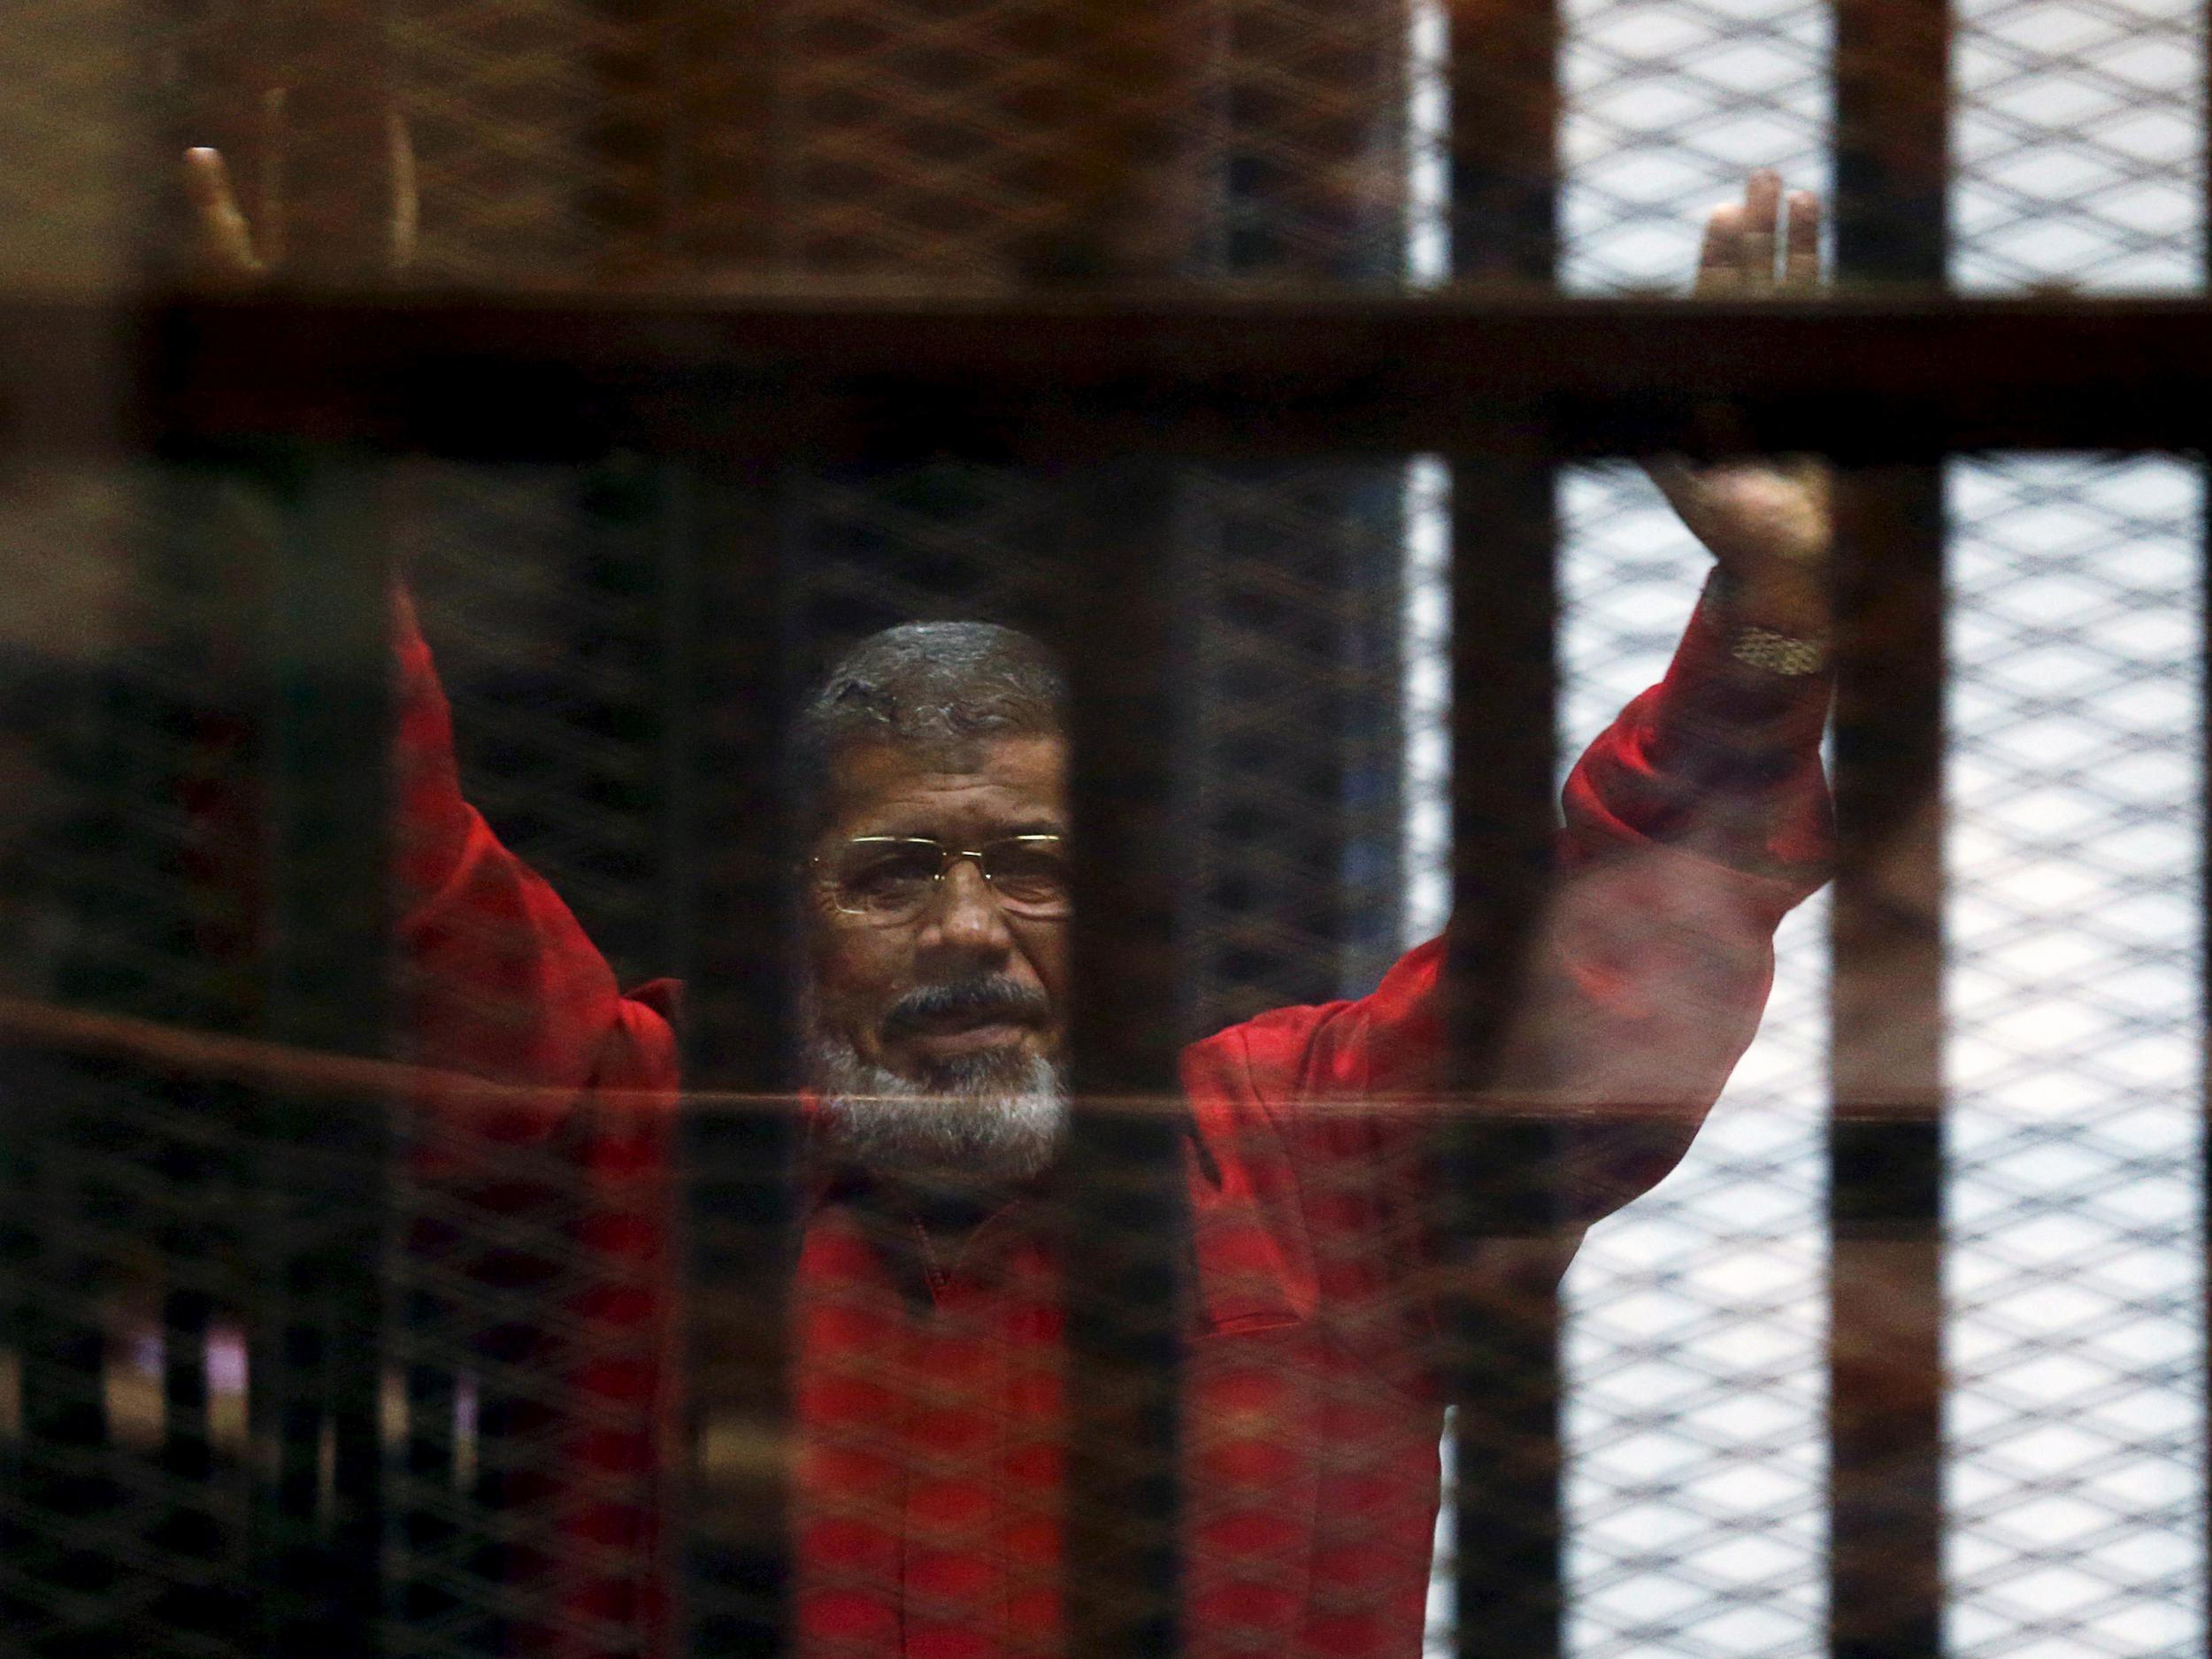 Egyptian Court Recommends Death Penalty For Journalists But Postpones  Ruling For Morsi  The Independent